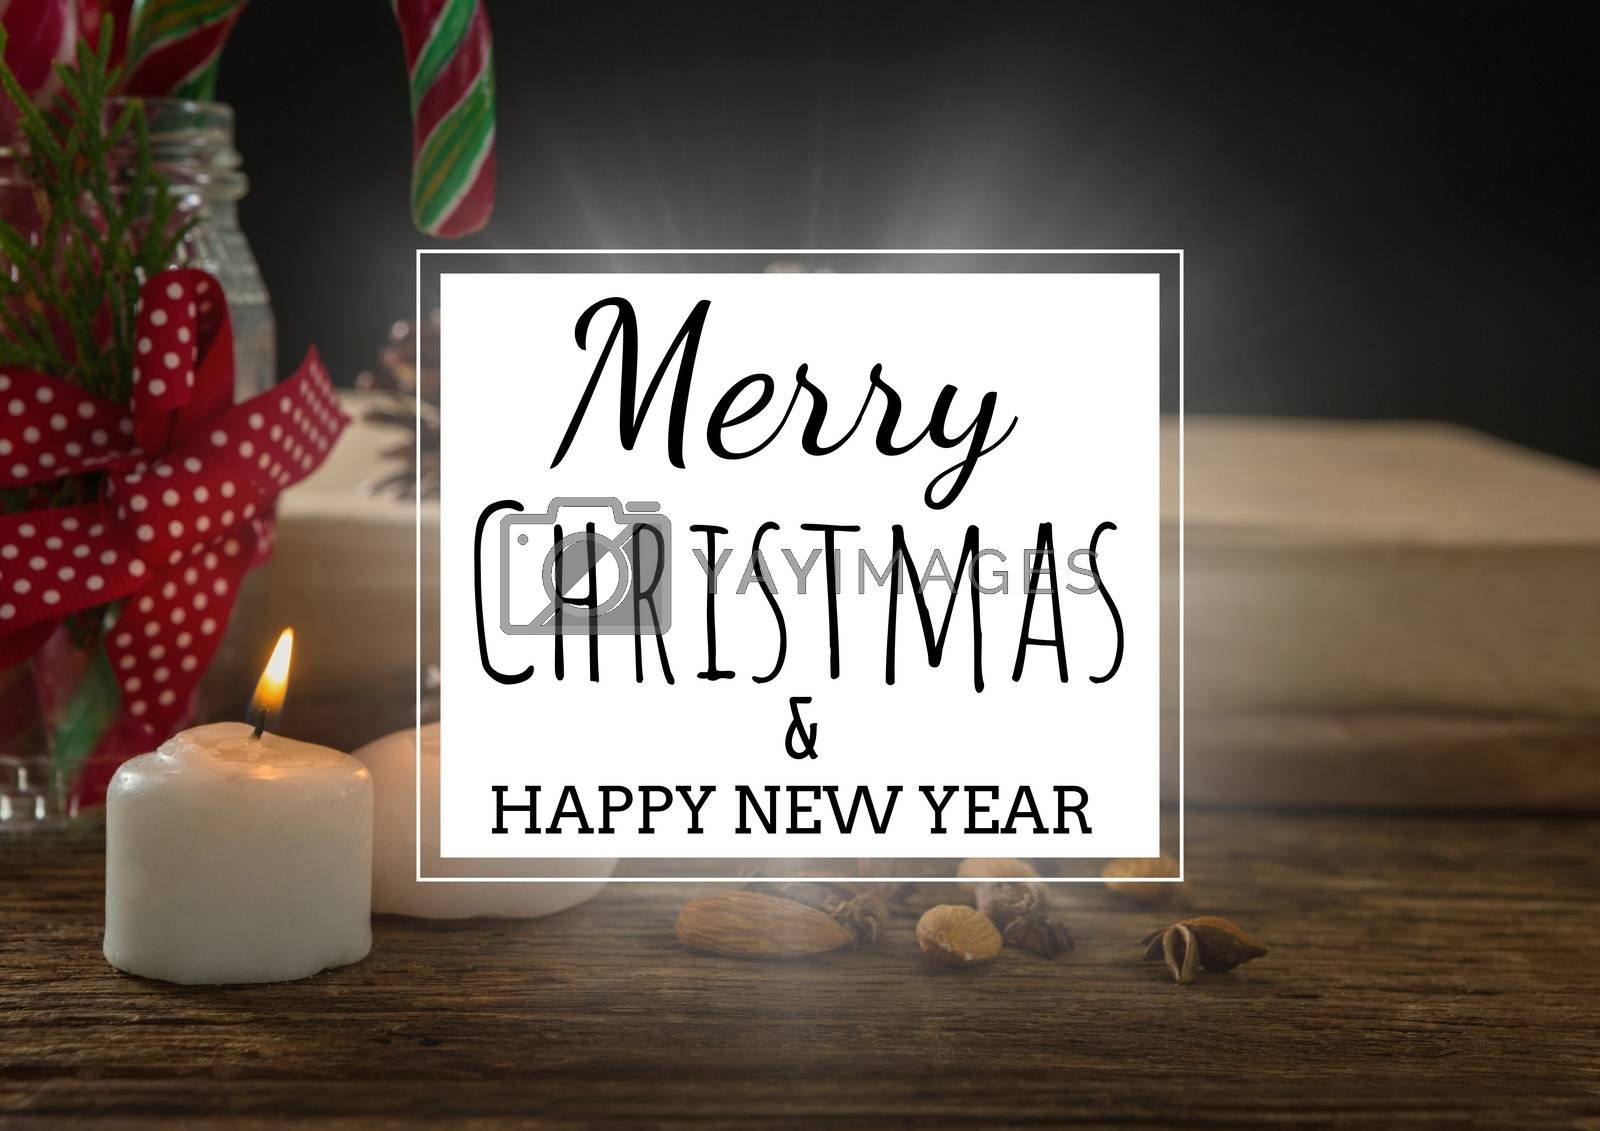 Digital composite of merry Christmas and happy new year text on christmas background